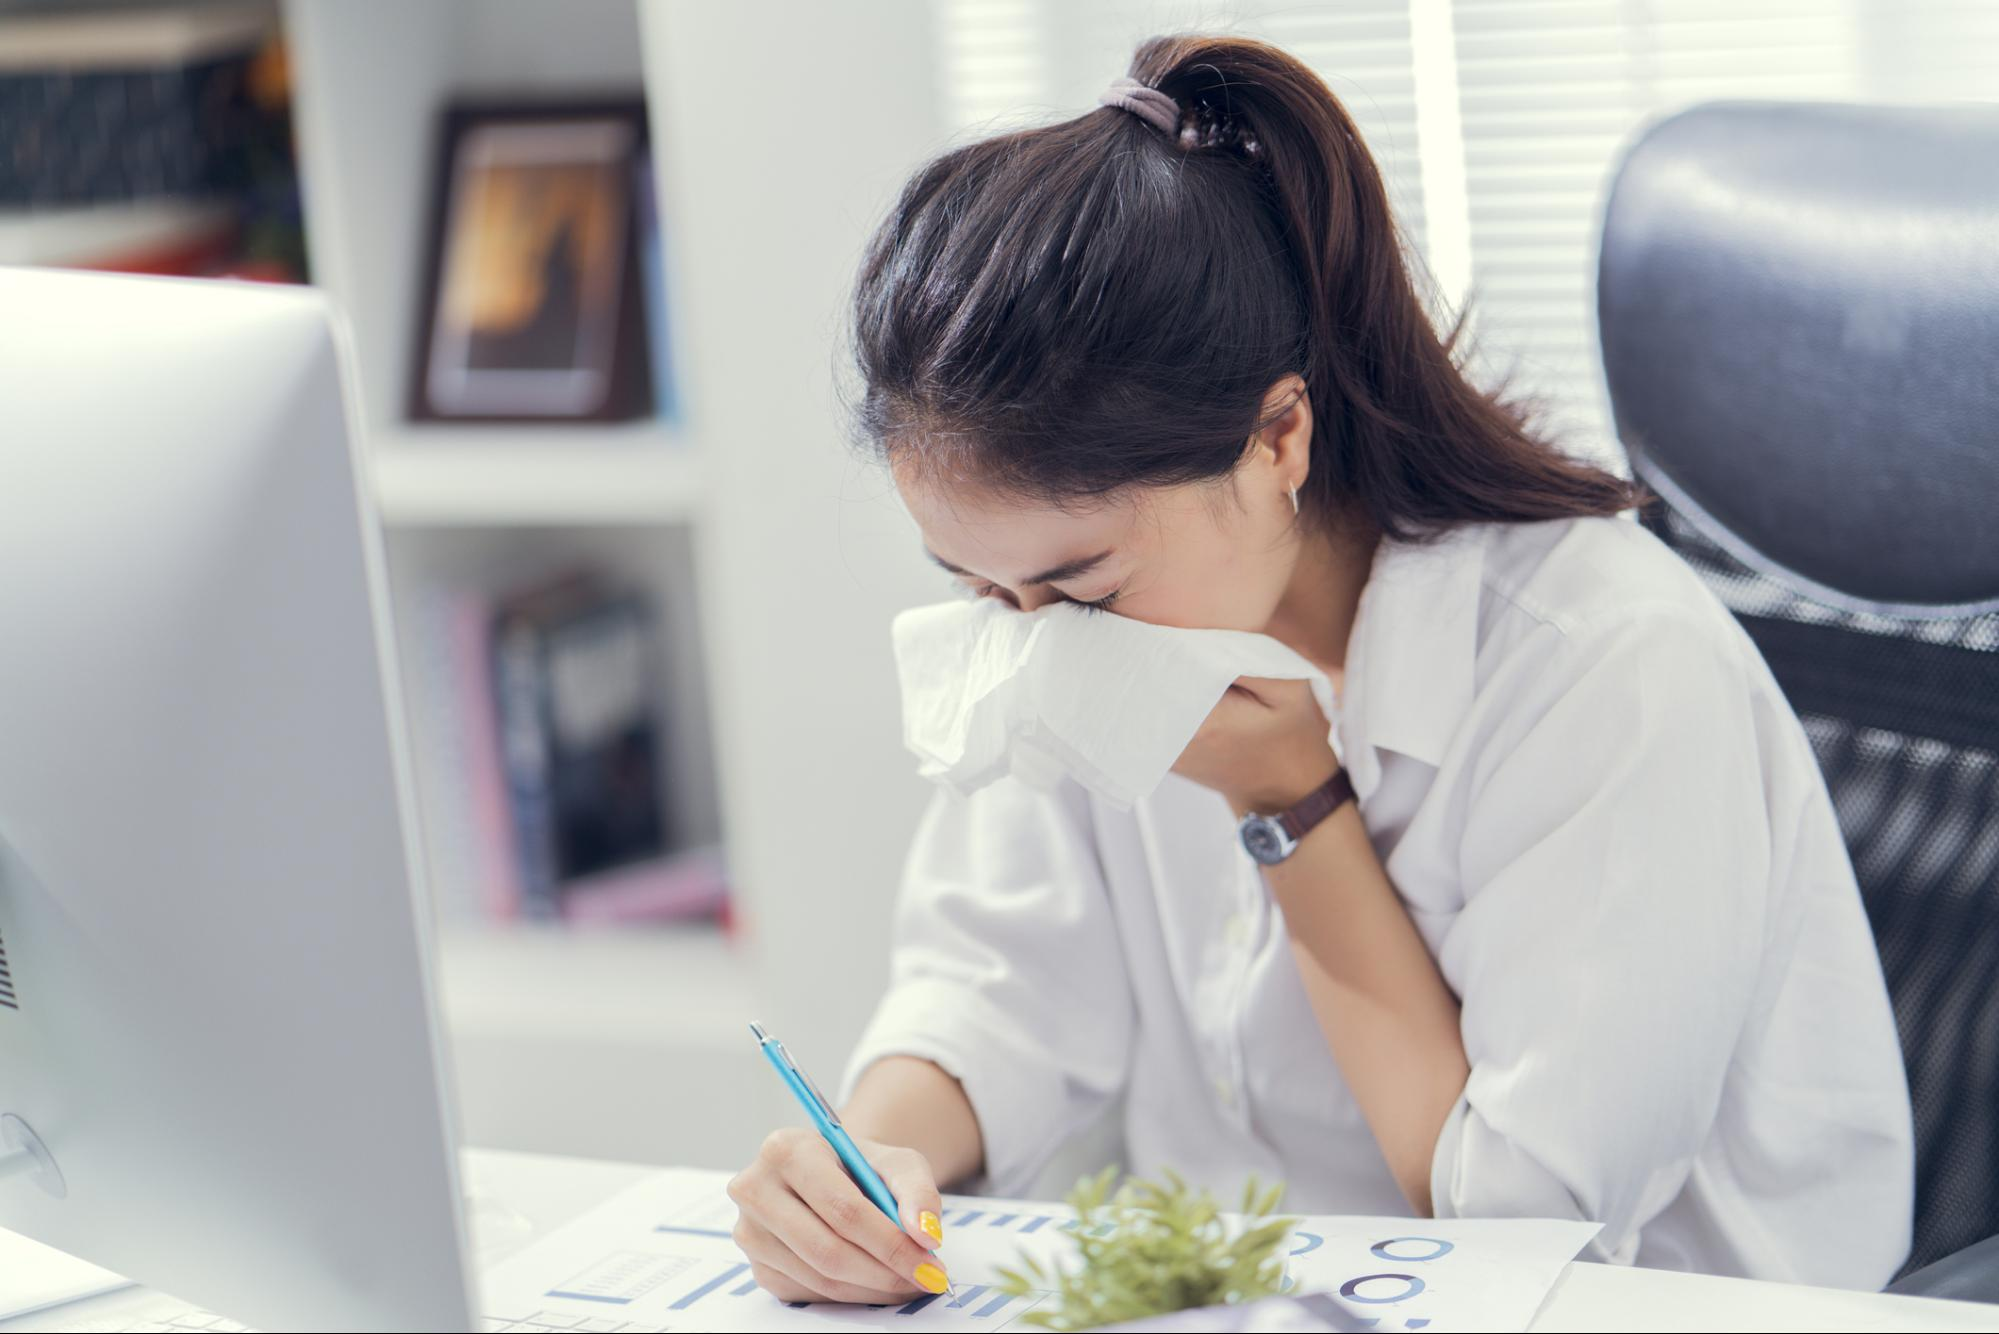 Woman sneezing into a tissue in front of a desk